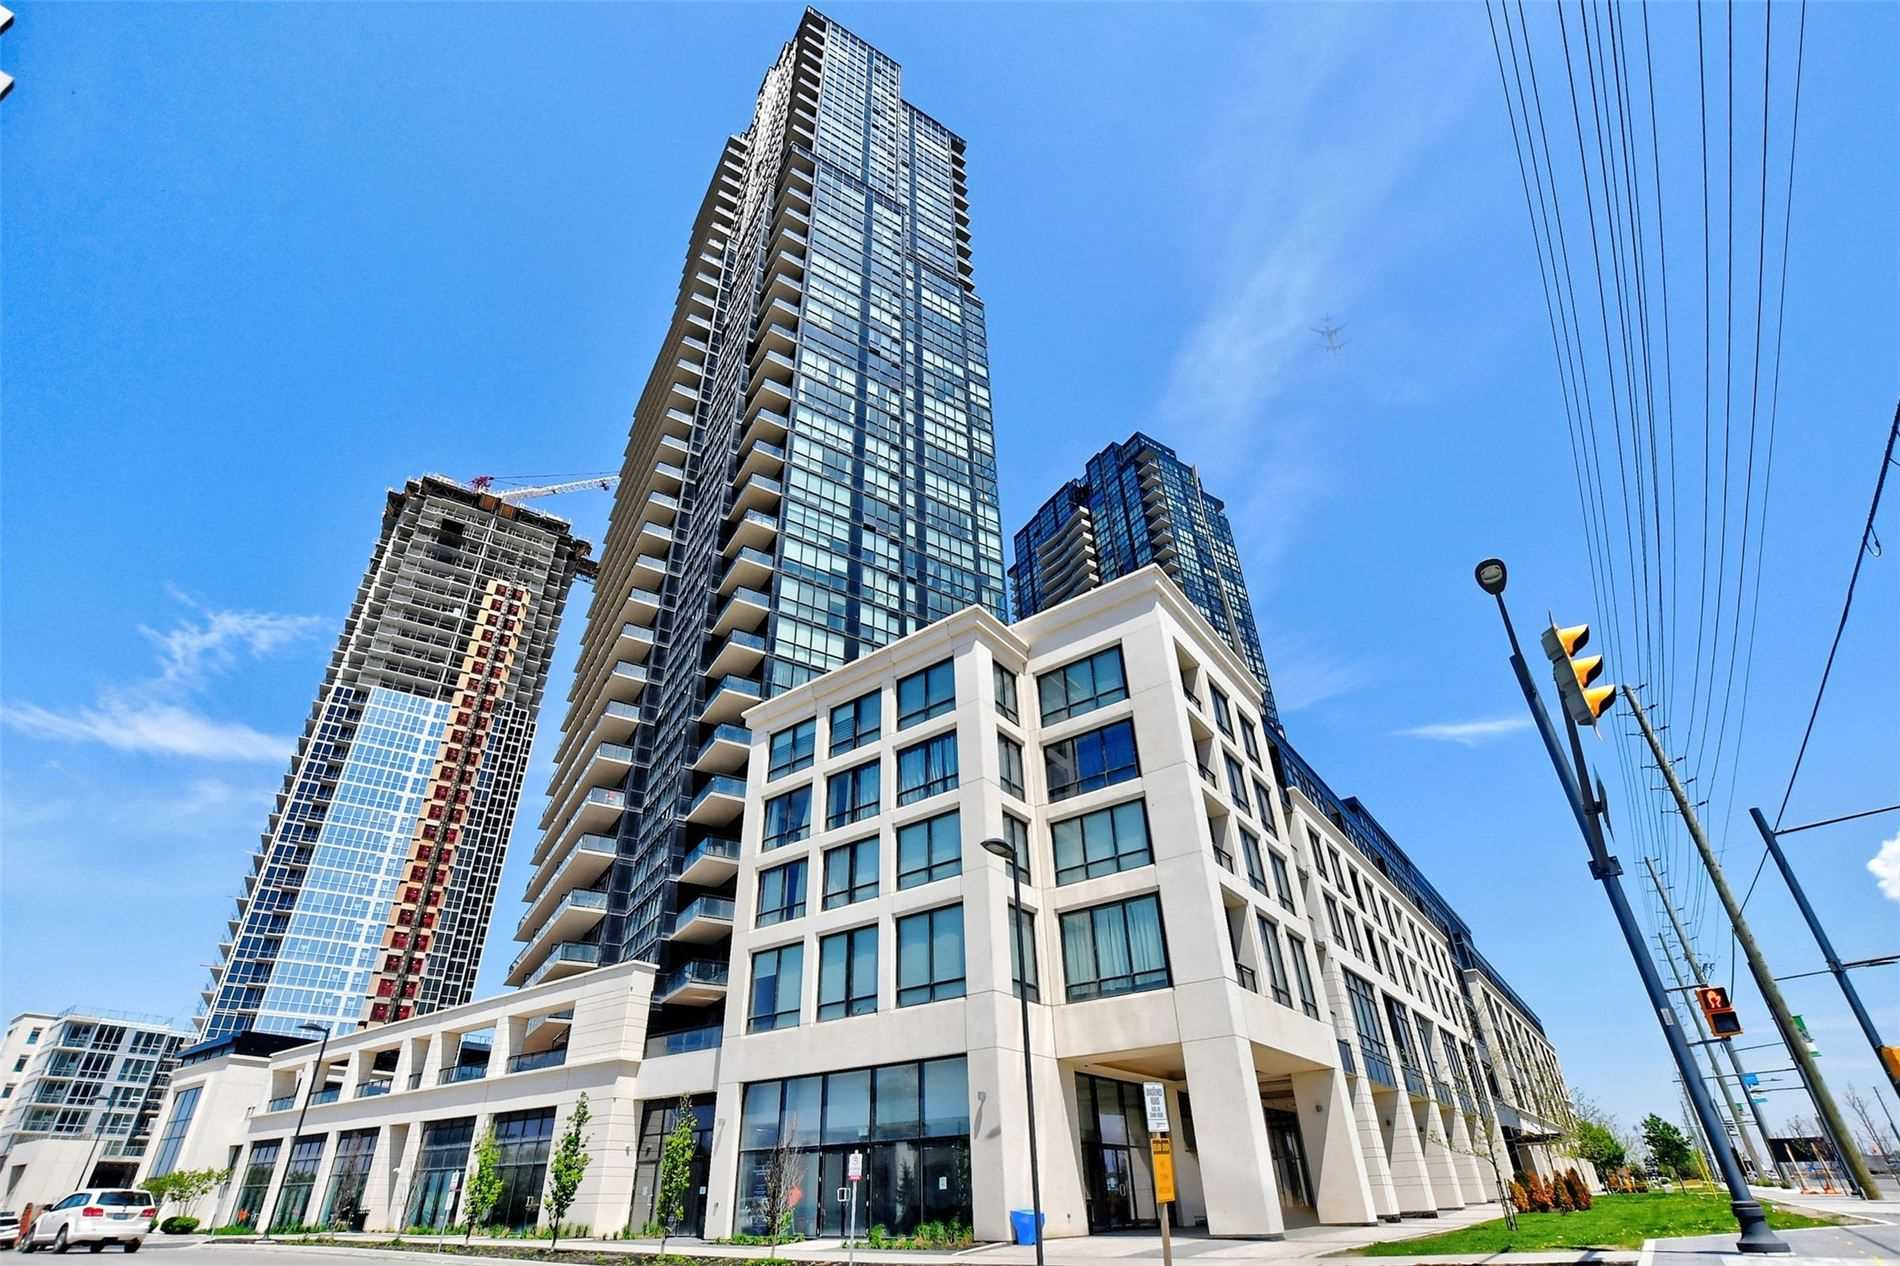 Corner Bright & Very Spacious 1 Bed + Den, 2 Bath Unit W/ North, East & South View Inc. Cn Tower! 780 Sqft! Open Concept Floor Plan, Flr To Ceiling Windows, 9Ft Smooth Ceilings, Laminate Floors Throughout, Just Freshly Painted, Modern Kitchen W/ High  Cabinets, Granite, Stainless Ap & Breakfast Bar! Den Can Be Used As 2nd Br! Double Entry Closet Ideal For Storage, Hallway To Baths & Br Allows For Added Privacy. En-Suite Laundry, 2 Tandem Parking, 1 Locker.